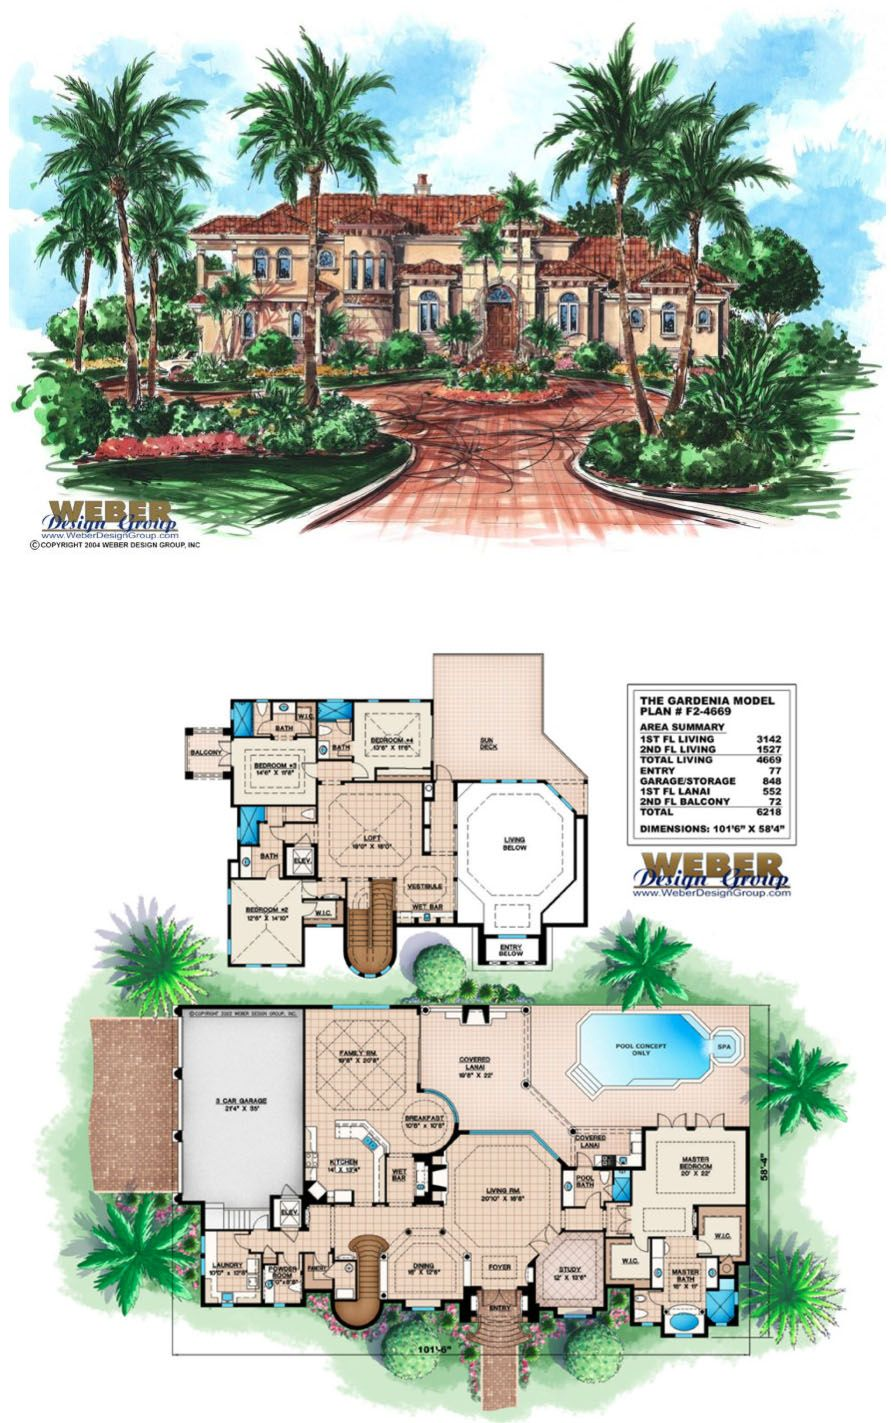 Mediterranean House Plan Luxury 2 Story Mediterranean Floor Plan Mediterranean Homes Exterior Mediterranean Homes Mediterranean House Plans